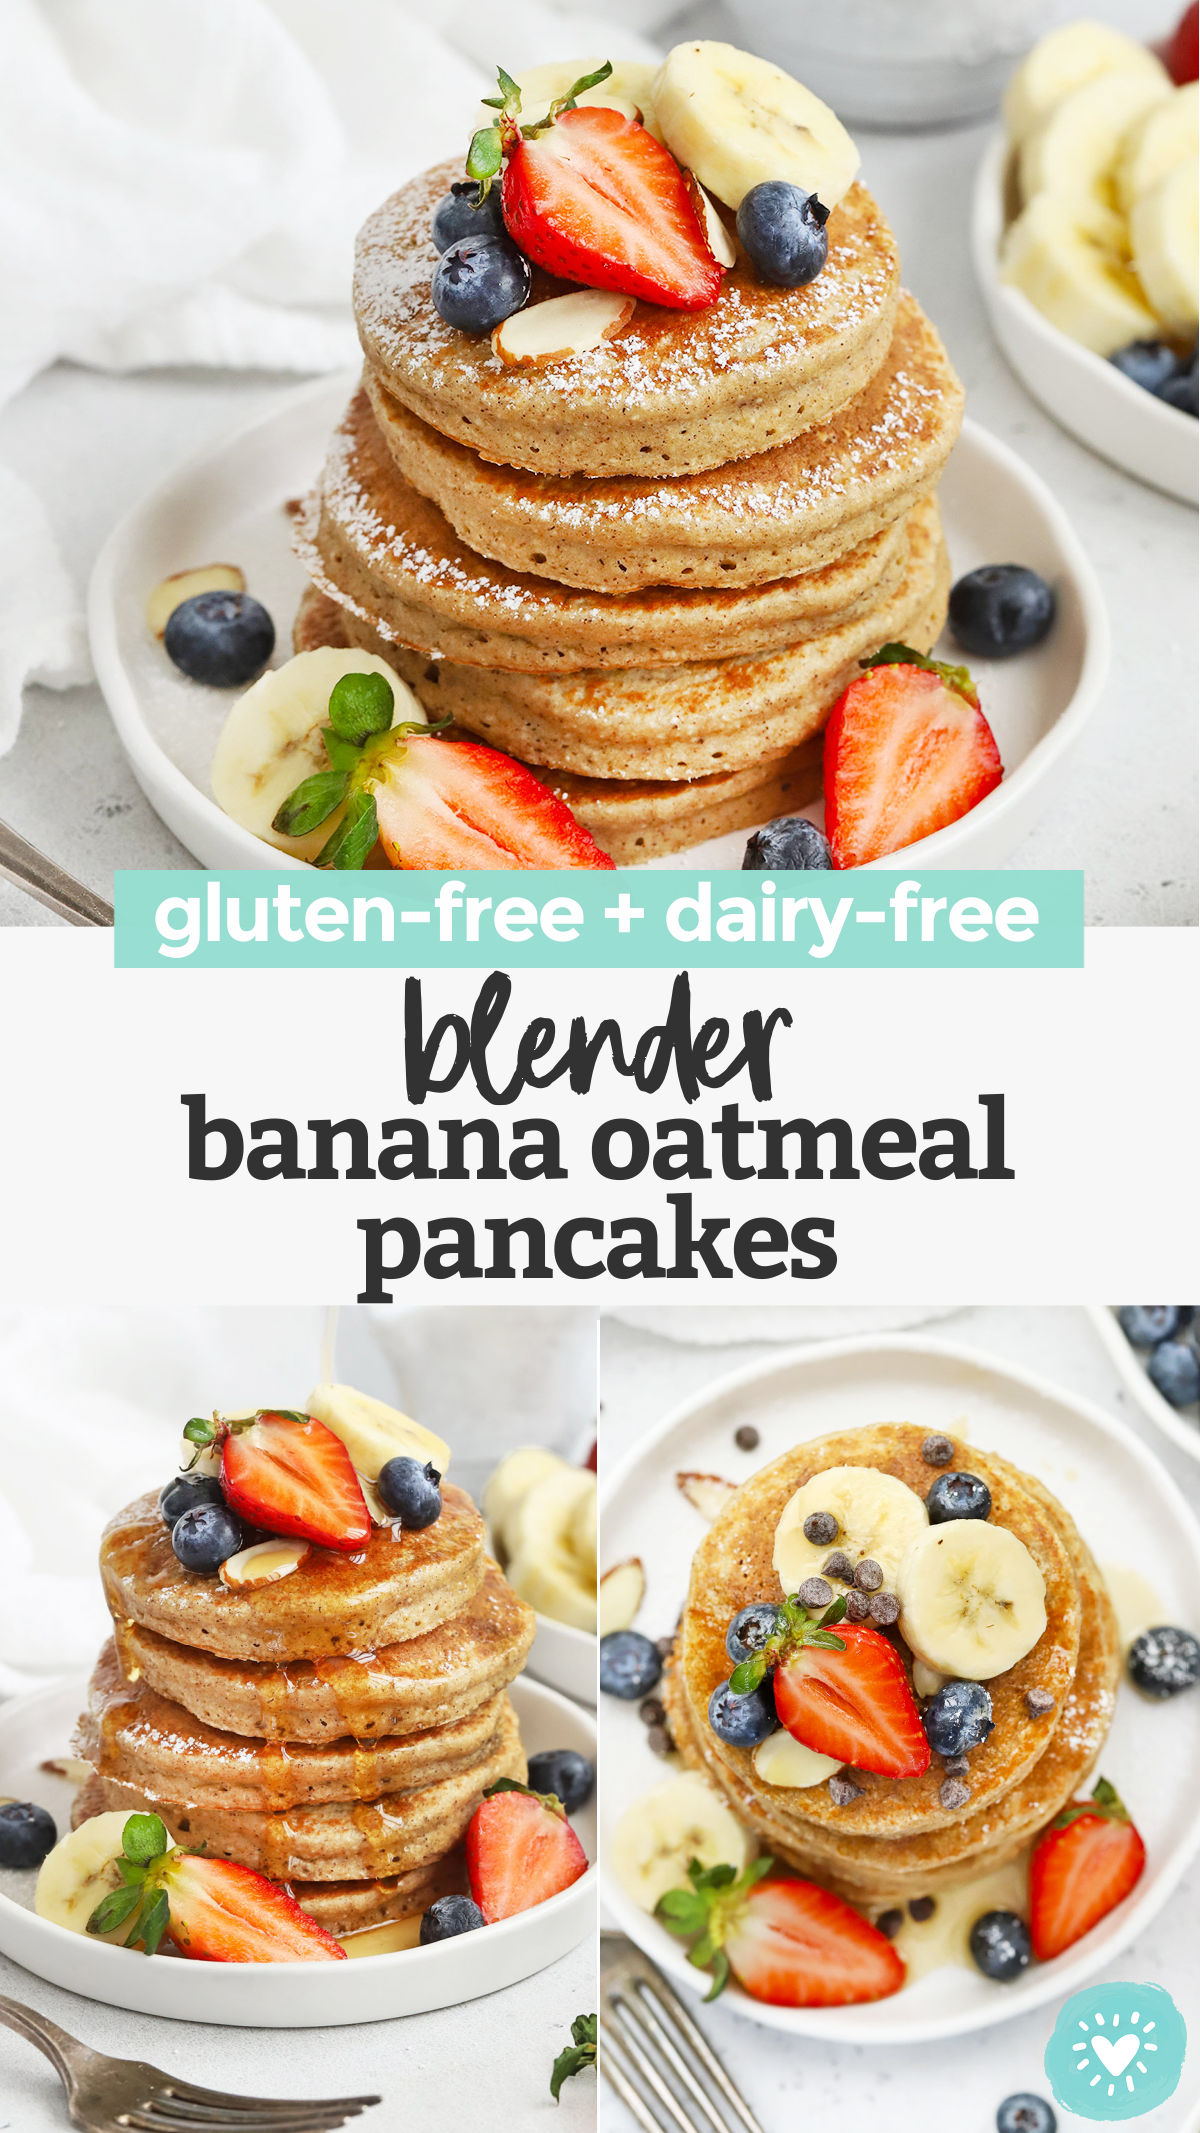 Blender Banana Oatmeal Pancakes - These healthy banana oatmeal pancakes are so easy! The perfect pancakes for weekdays or lazy weekends. (Gluten-free, dairy-free) // Healthy banana pancakes // banana oat pancakes // gluten-free banana pancakes #pancakes #glutenfree #healthybreakfast #banana #oatmeal